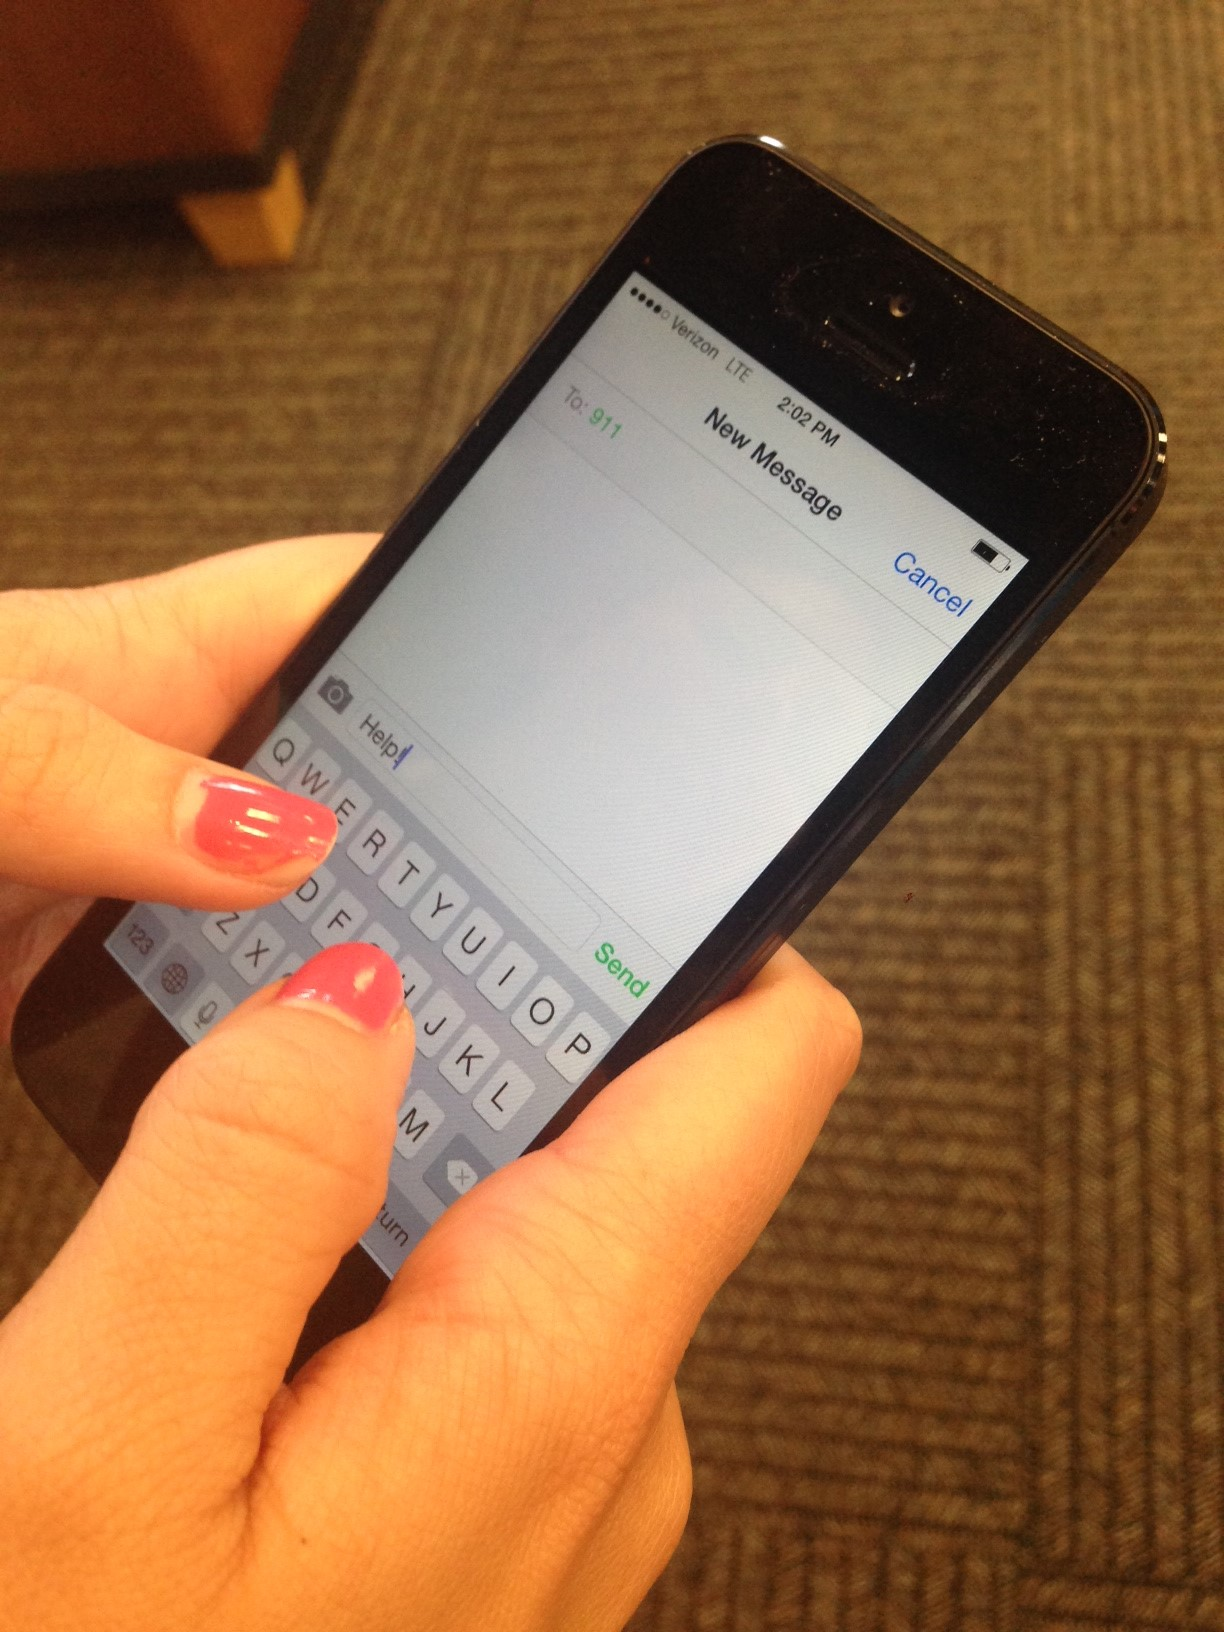 Iphone text message screen